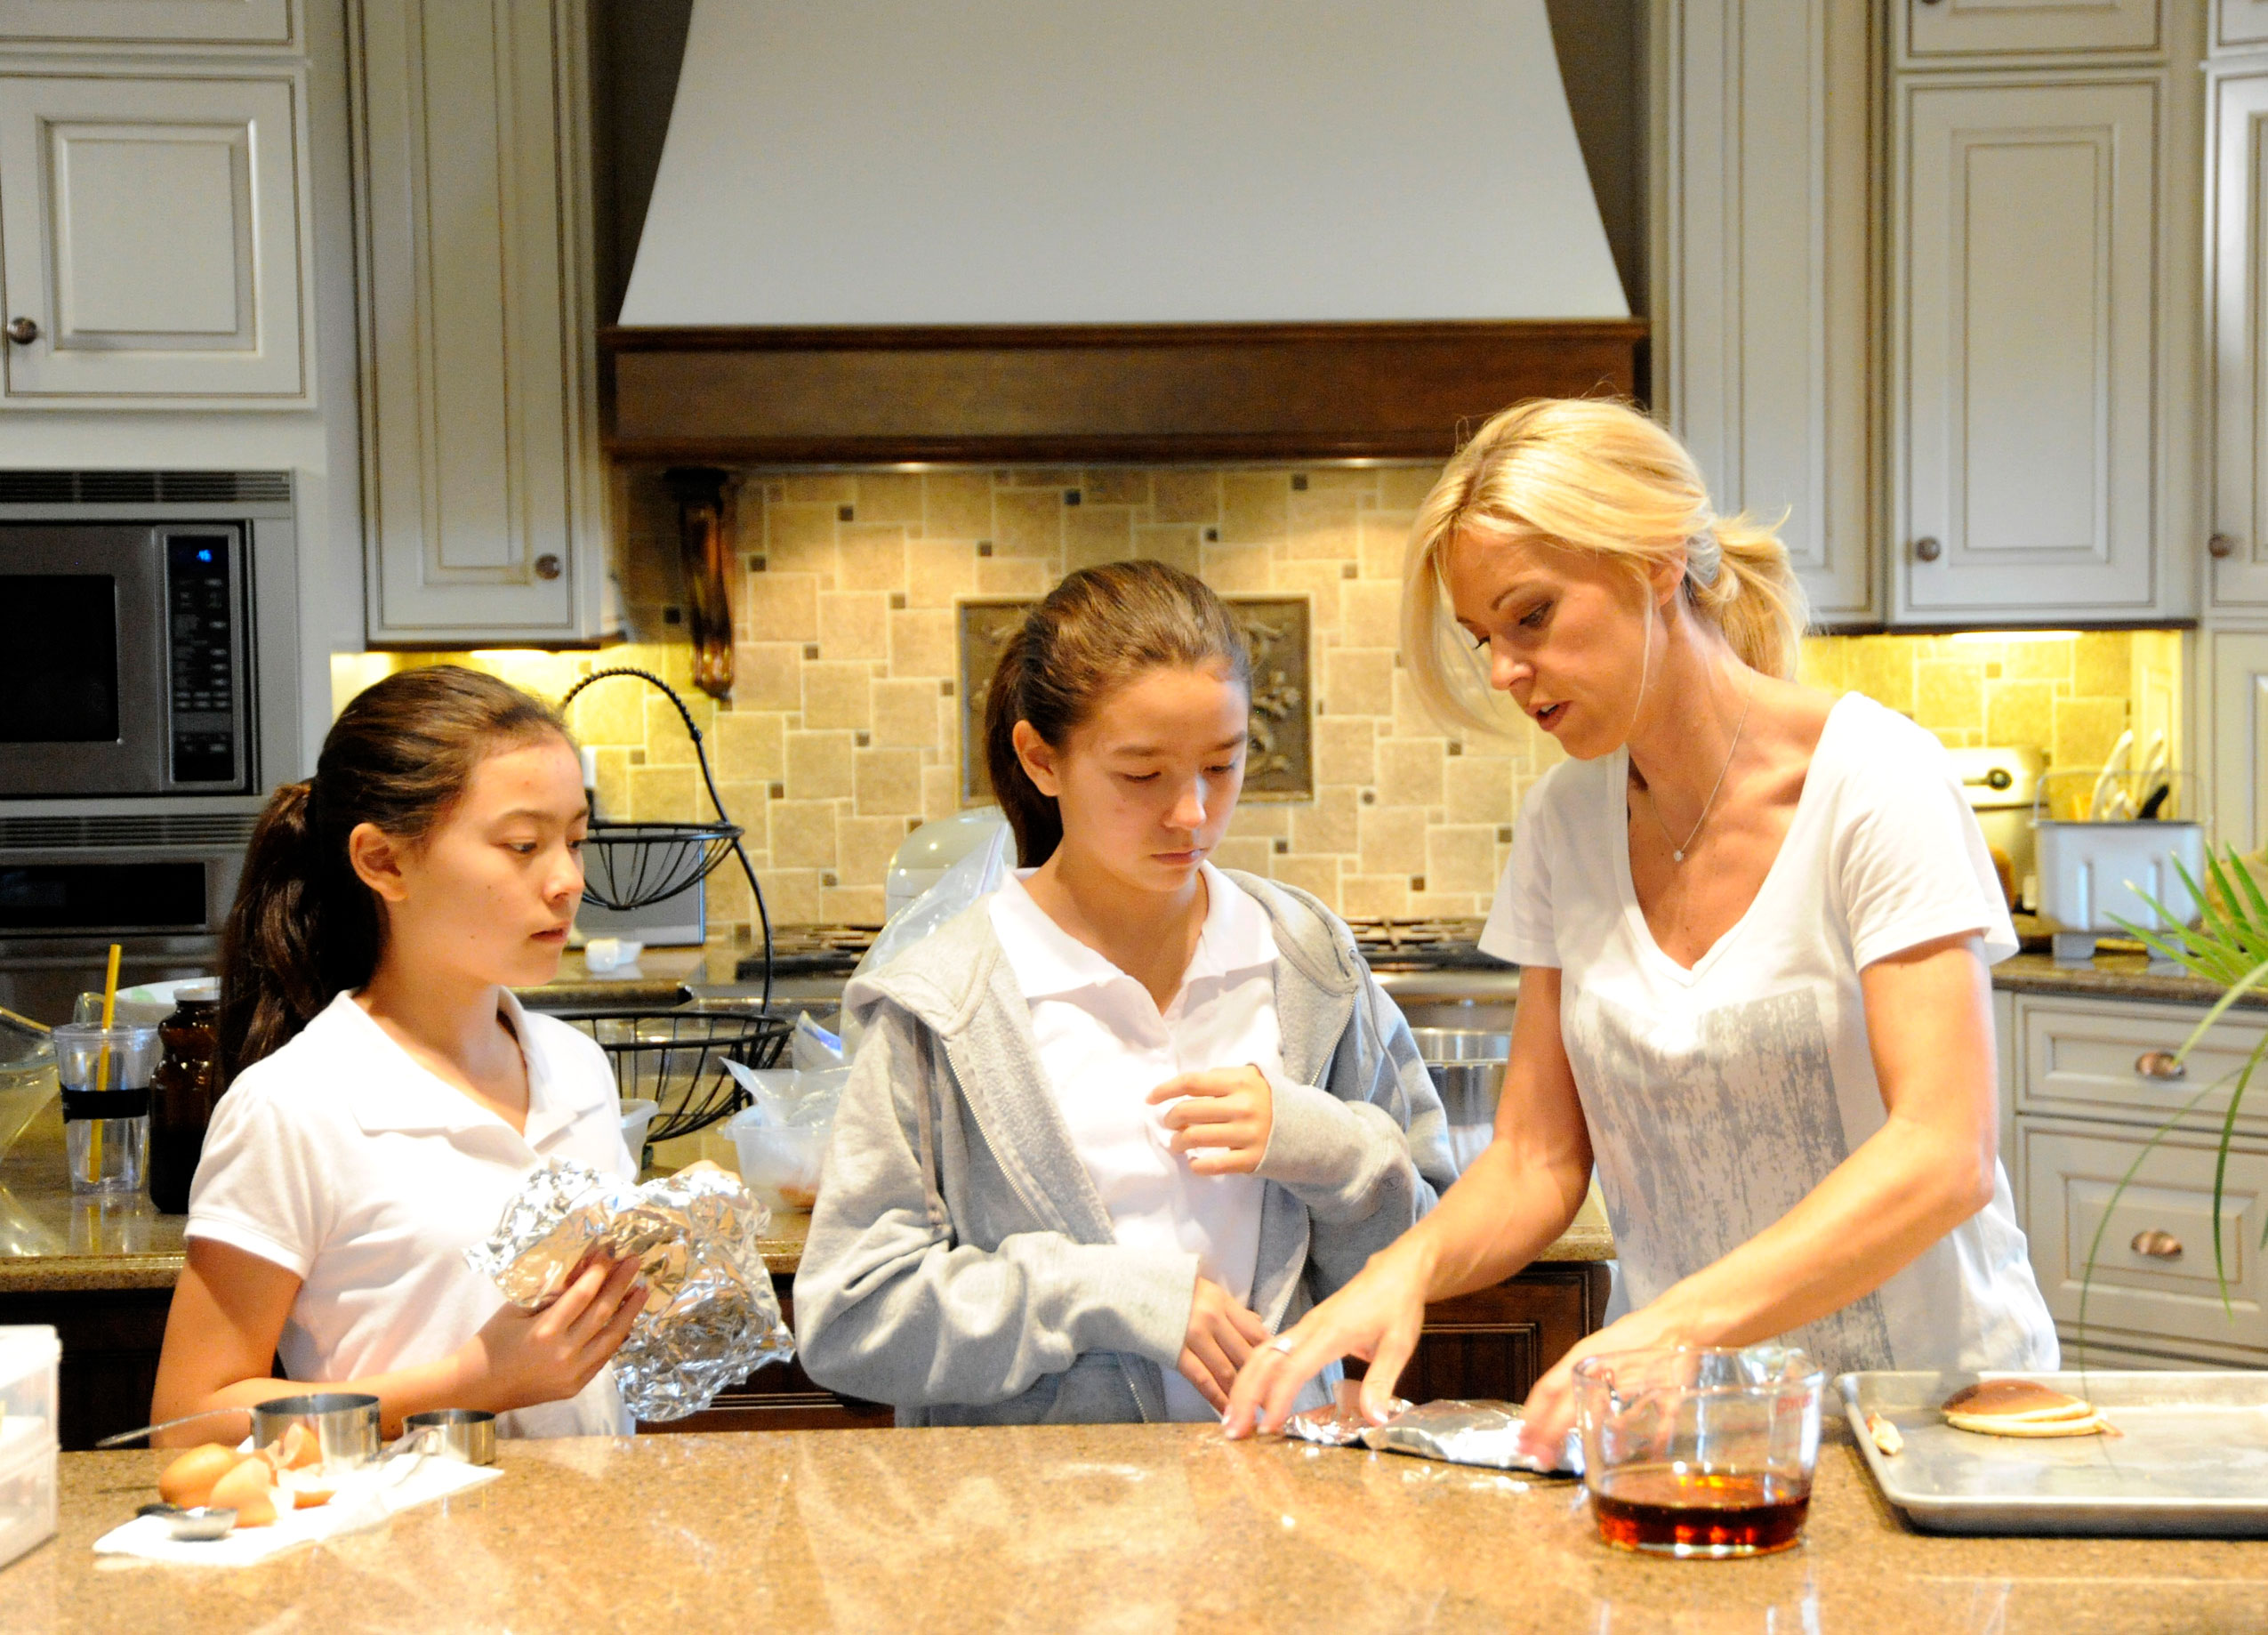 Kate Gosselin Makes Rare Appearance With Kids, Talks Dating Show - Fans of Jon & Kate Plus 8 have watched the Gosselin kids grow up. The college students have come a long way since their first TV appearance in 2007.